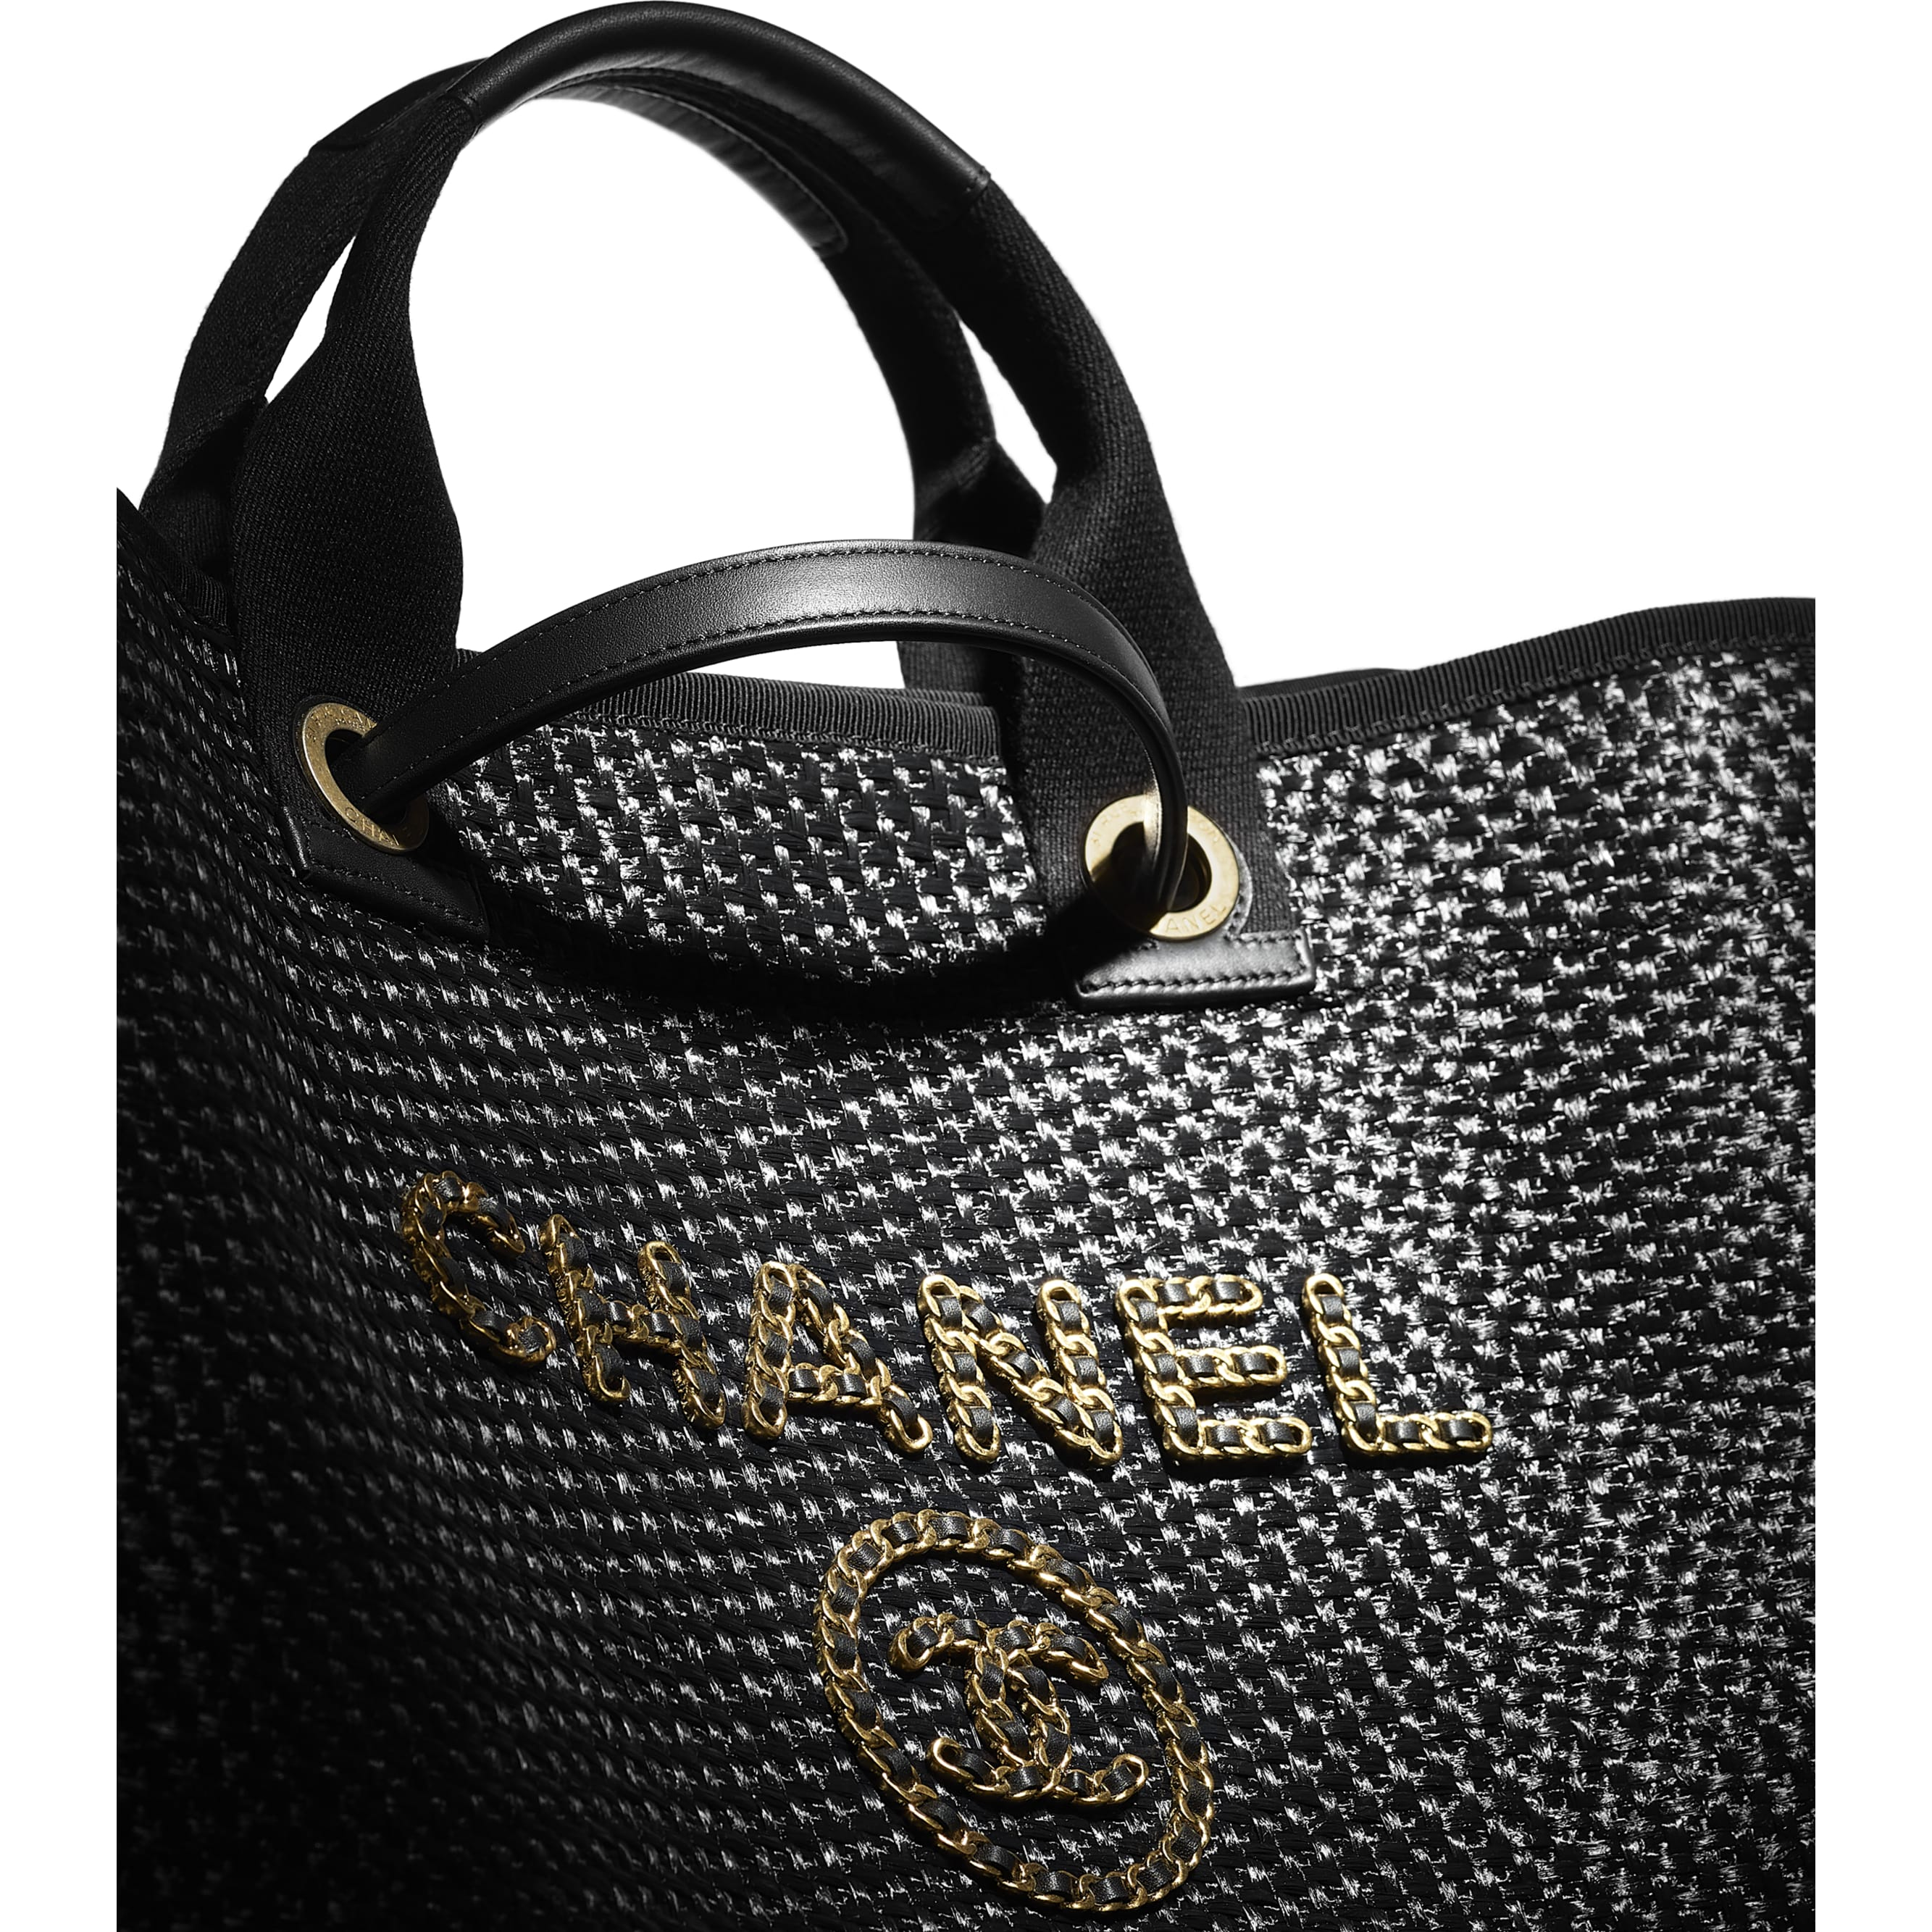 Large Tote - Black - Straw, Calfskin & Gold Metal - CHANEL - Extra view - see standard sized version